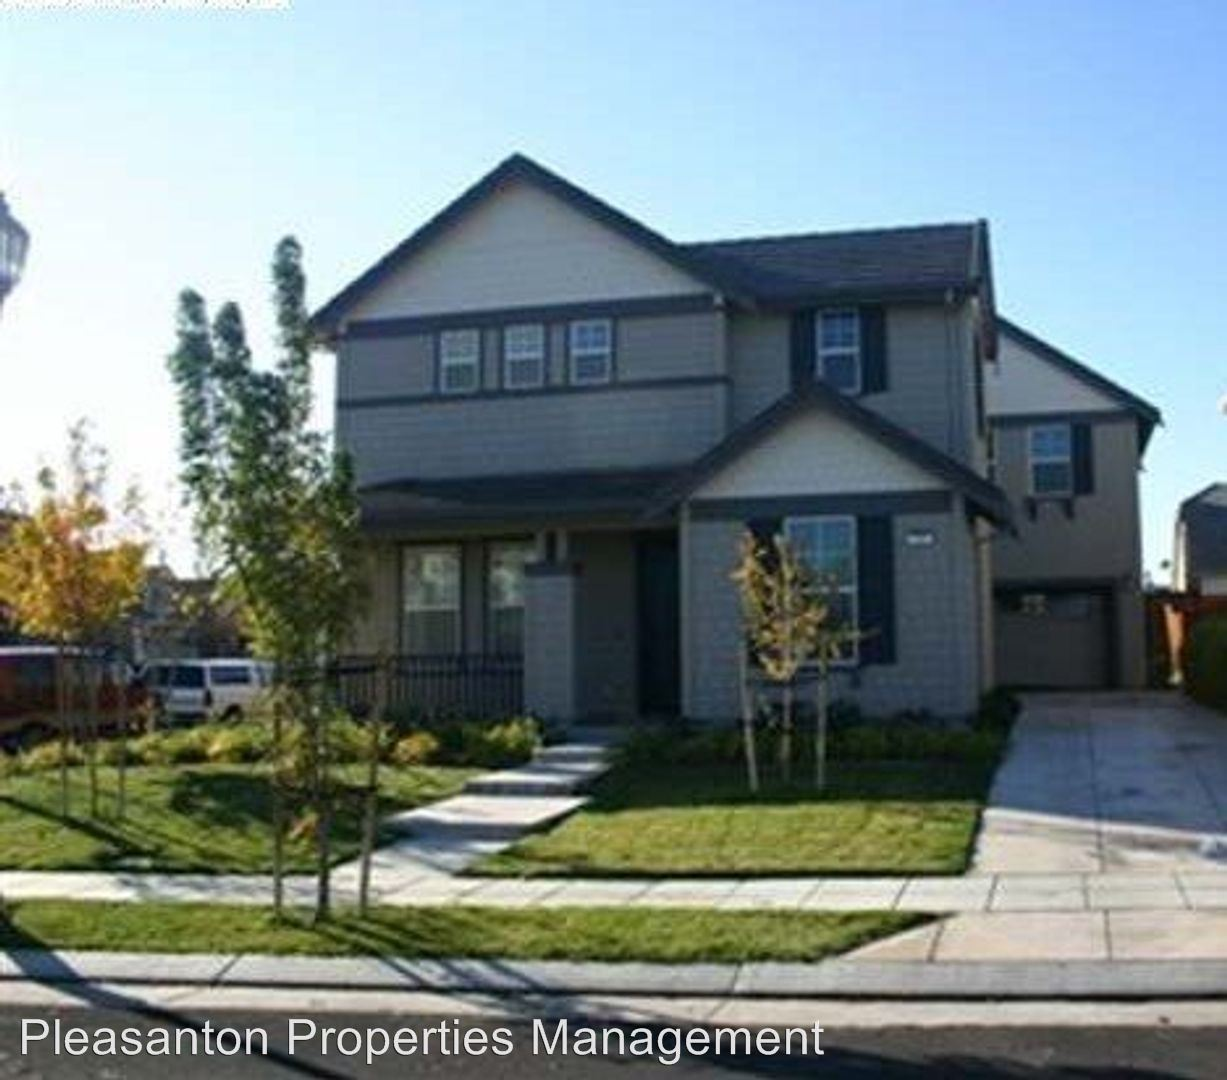 20 Best Apartments In Discovery Bay, CA (with pictures)! Ranch Floor Plans Townhomes Gregory on